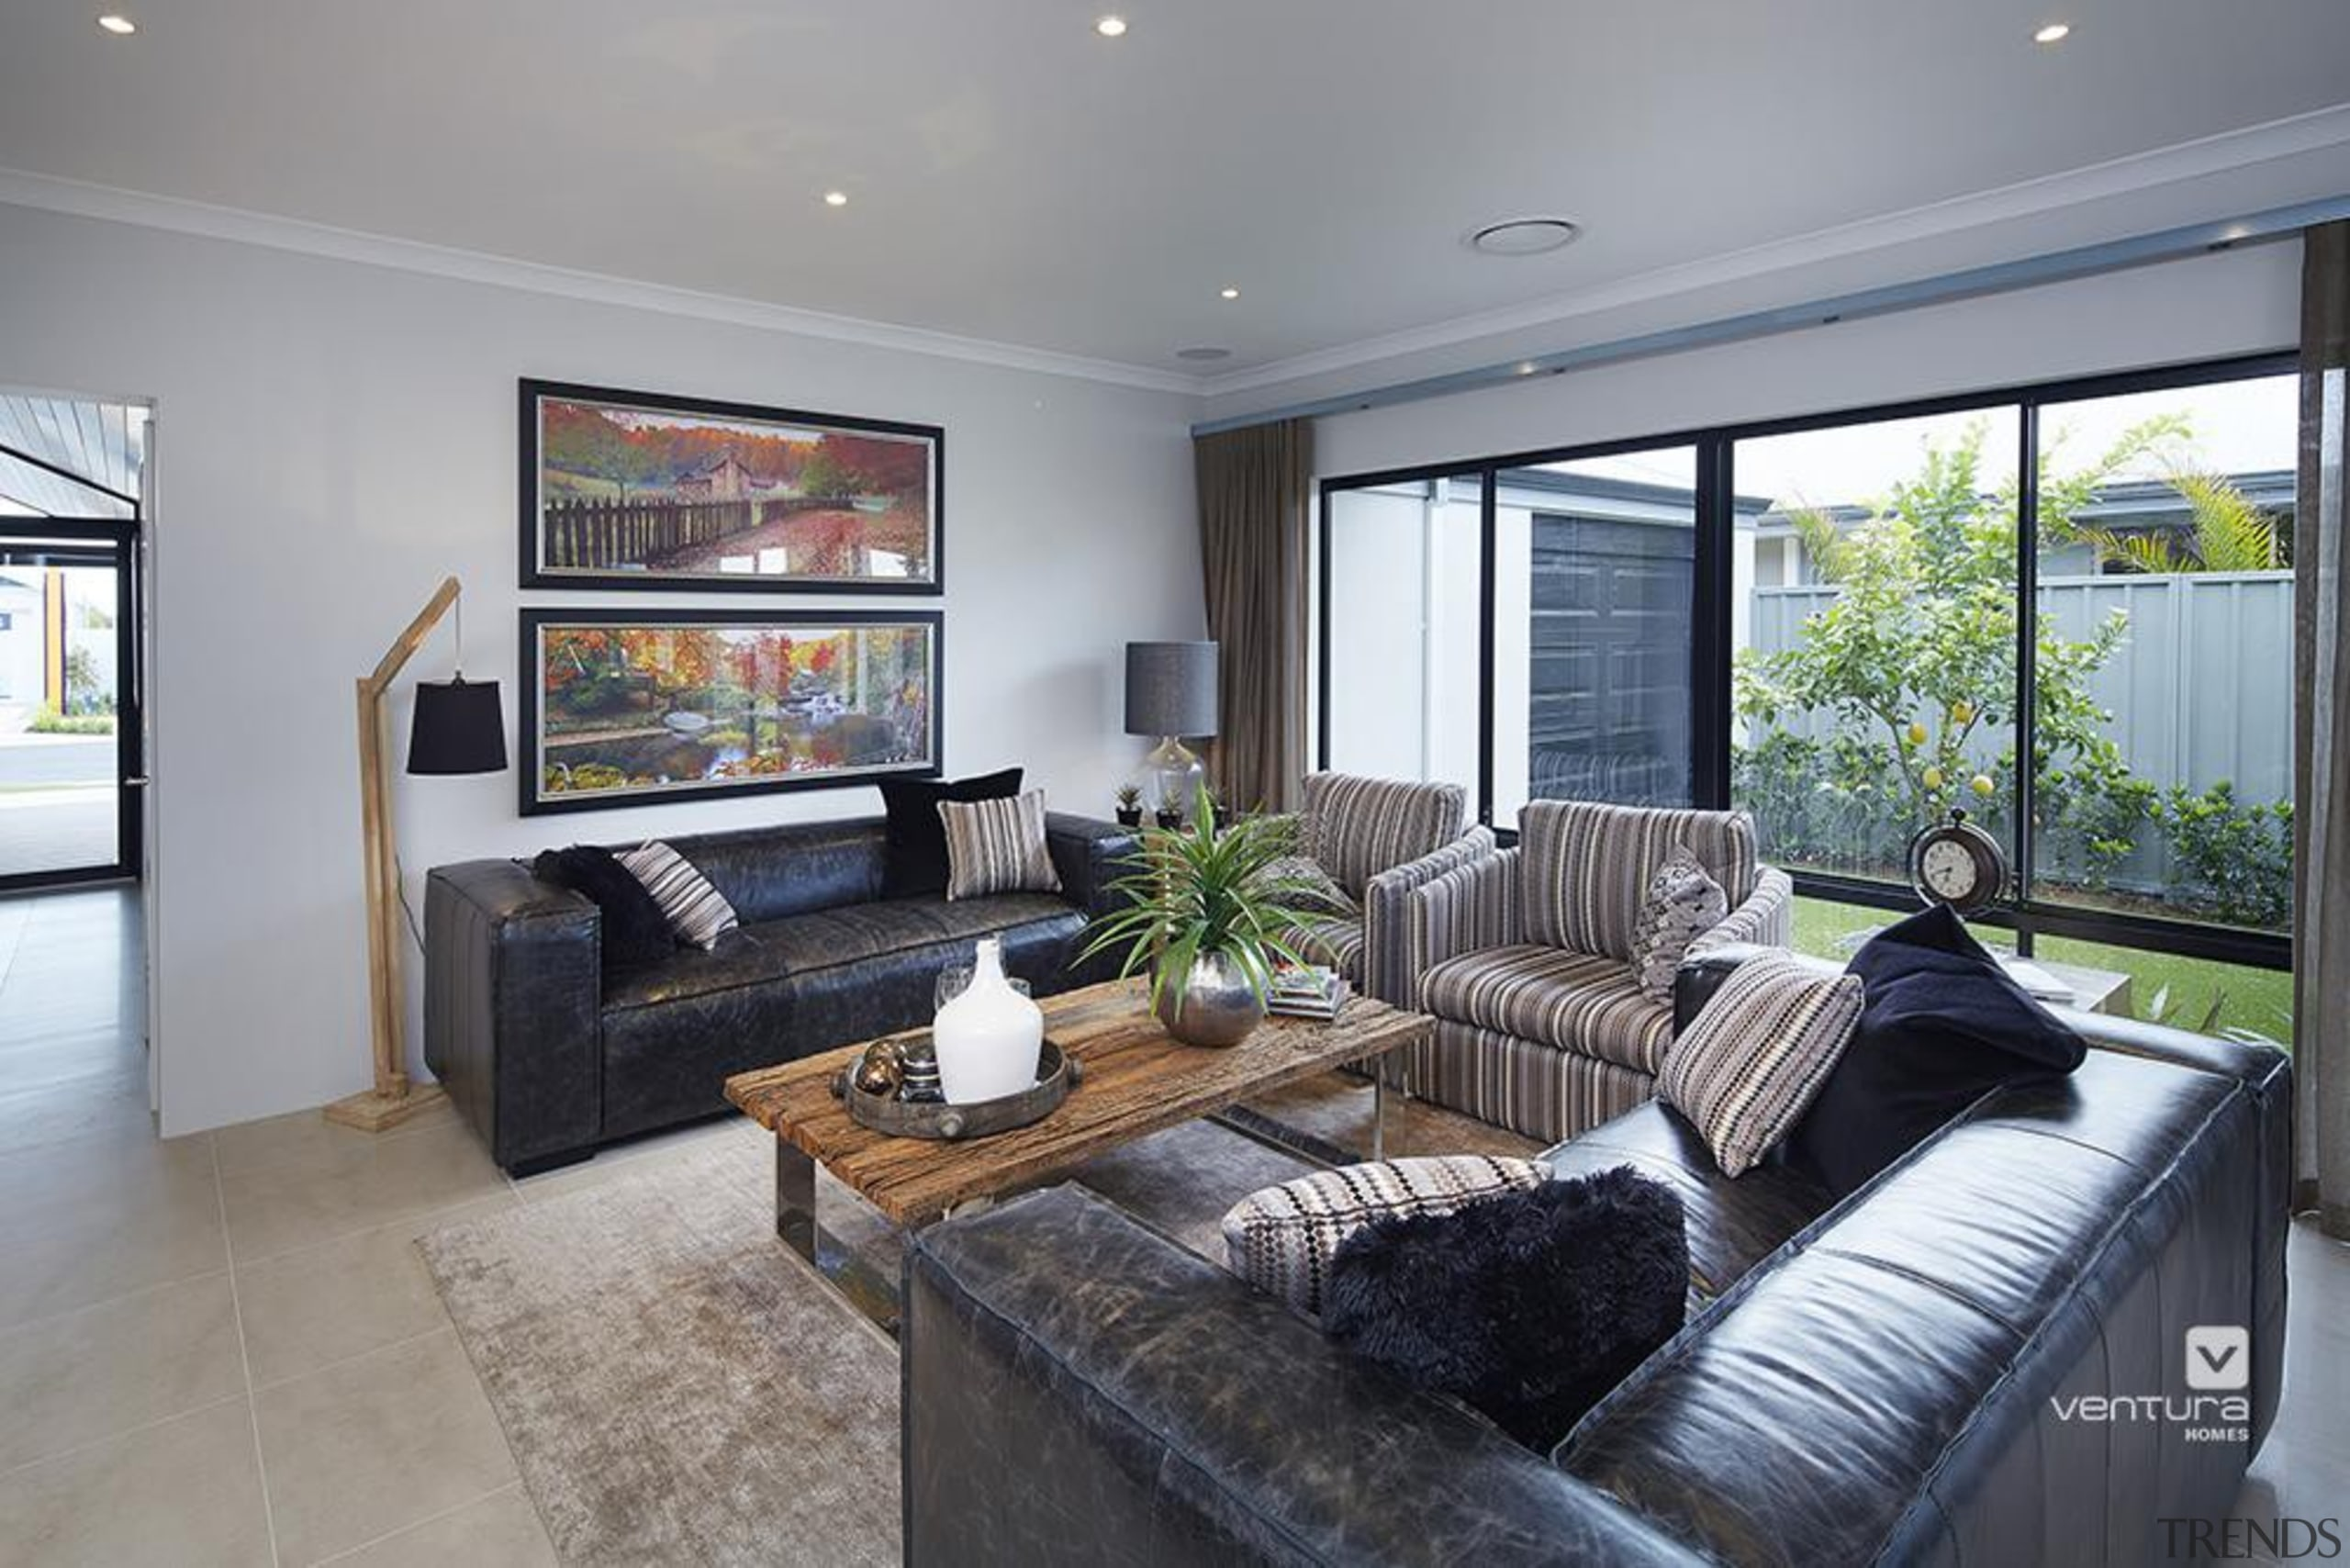 Living Room Design. - The Macquarie Display Home home, interior design, living room, property, real estate, room, gray